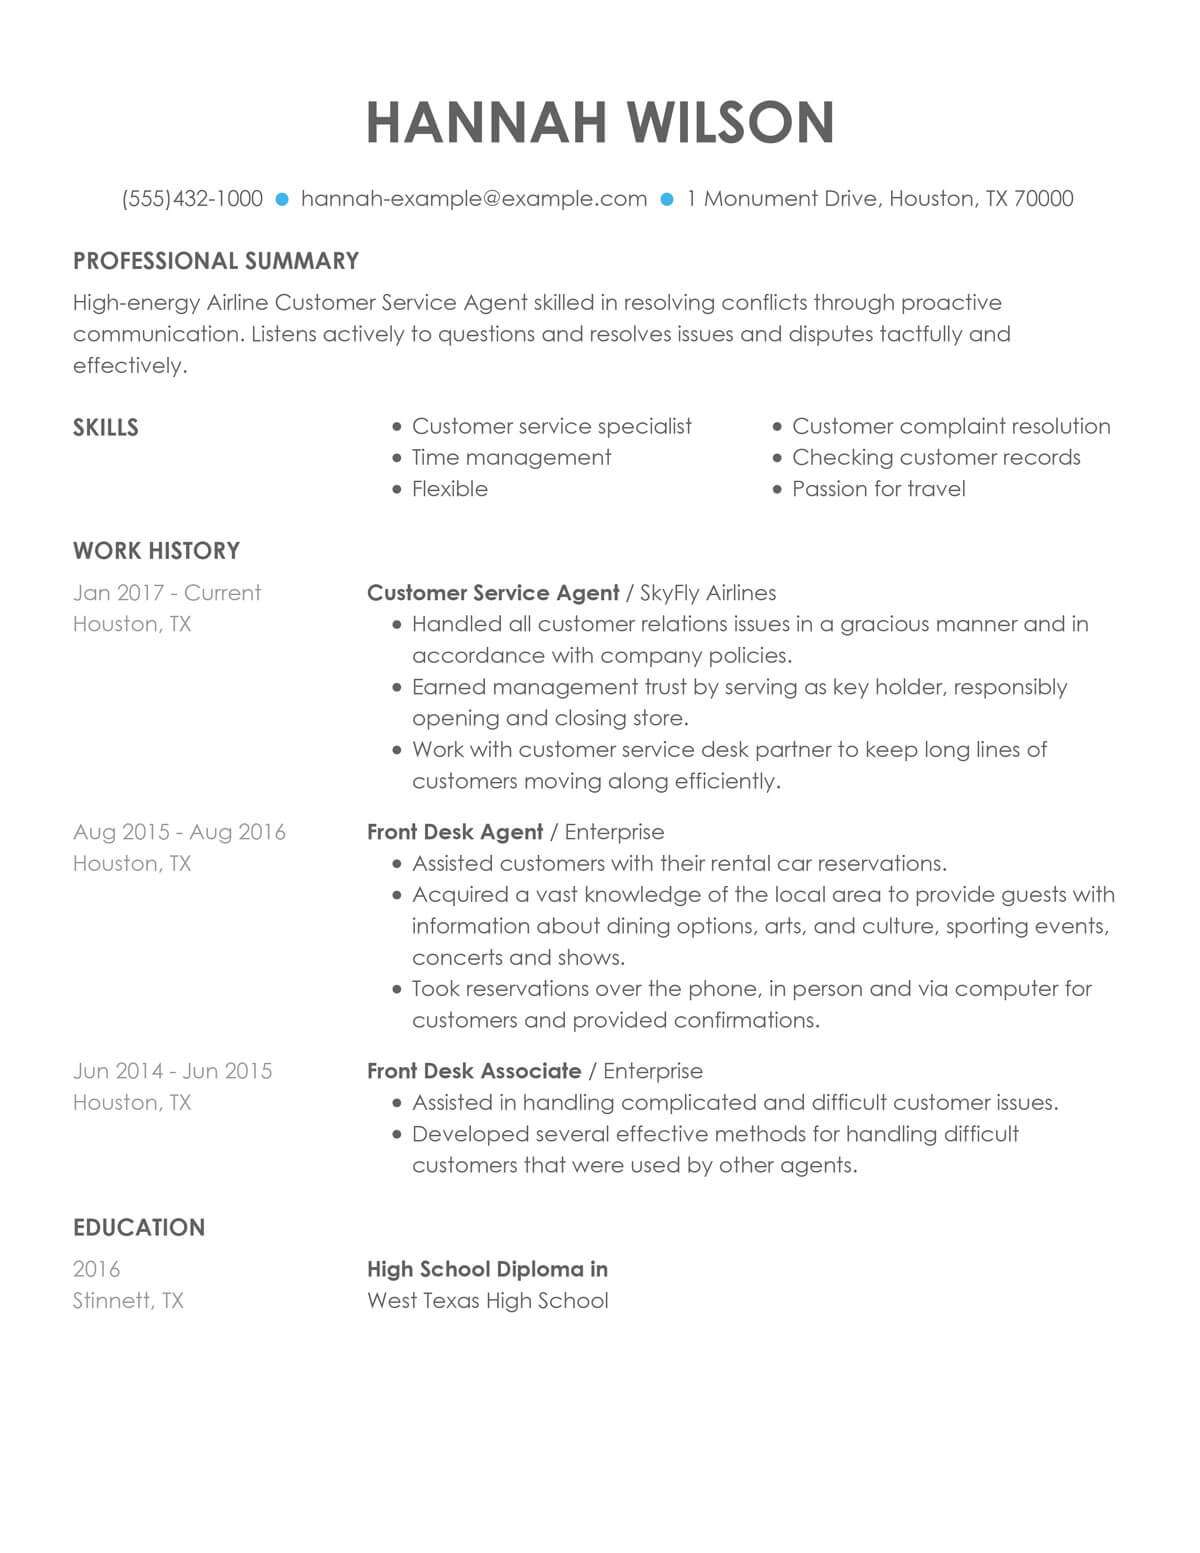 customize our customer representative resume example service keywords airline agent Resume Customer Service Resume Keywords